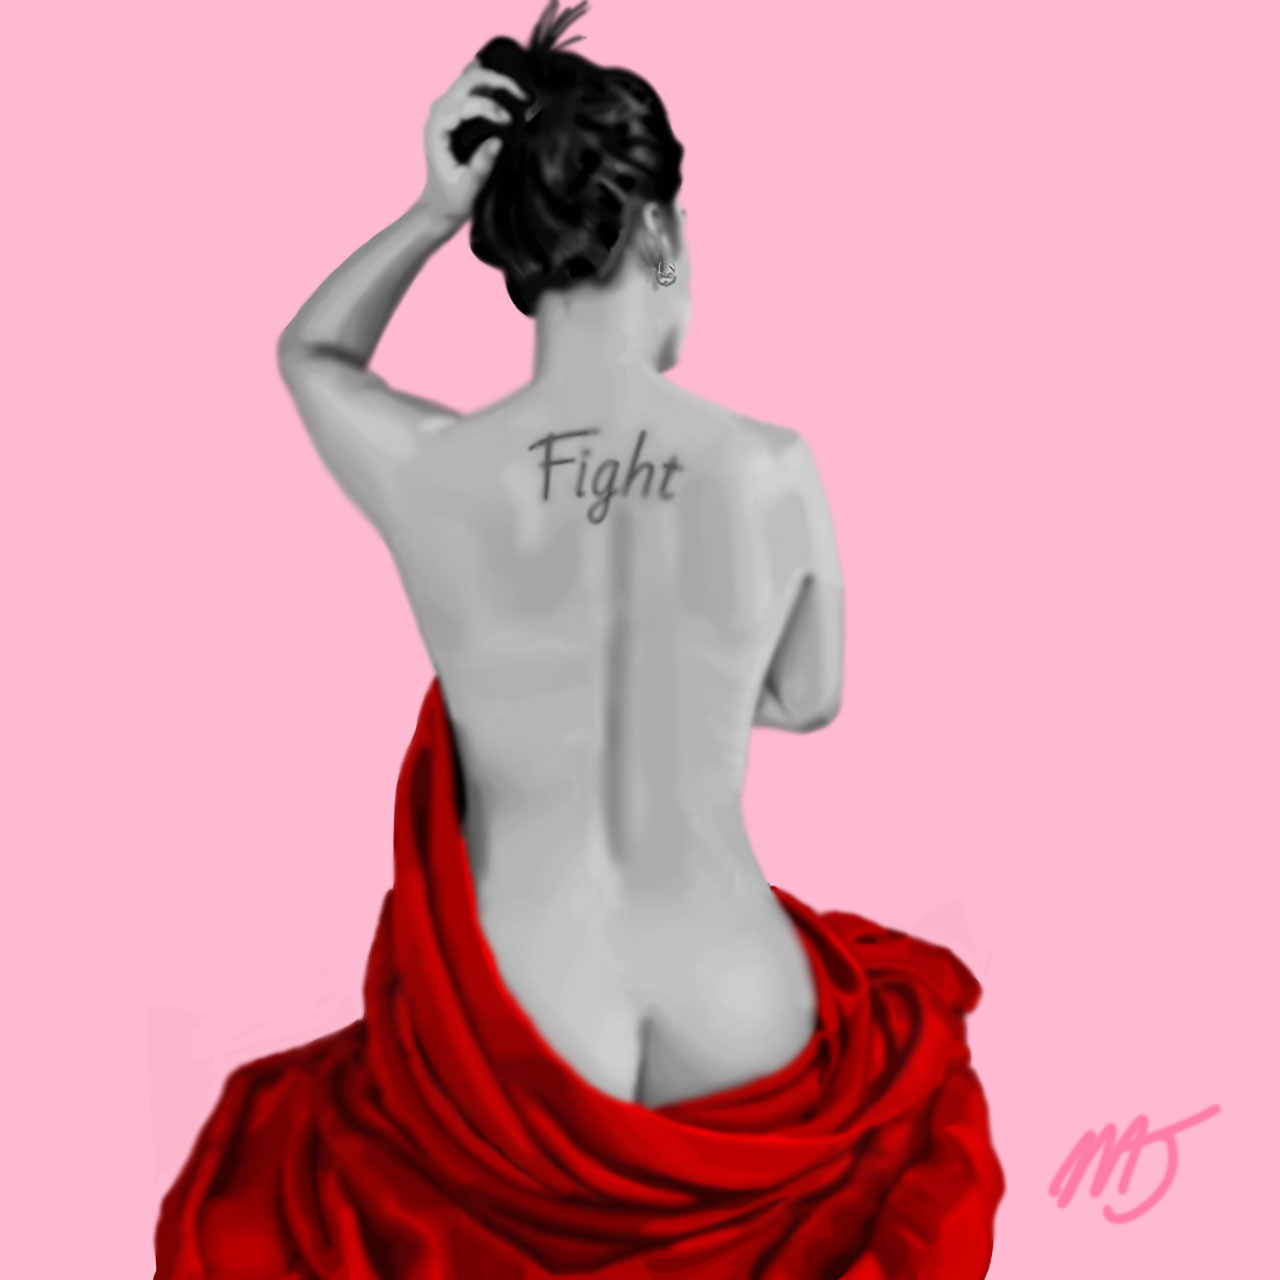 The Female Fighter